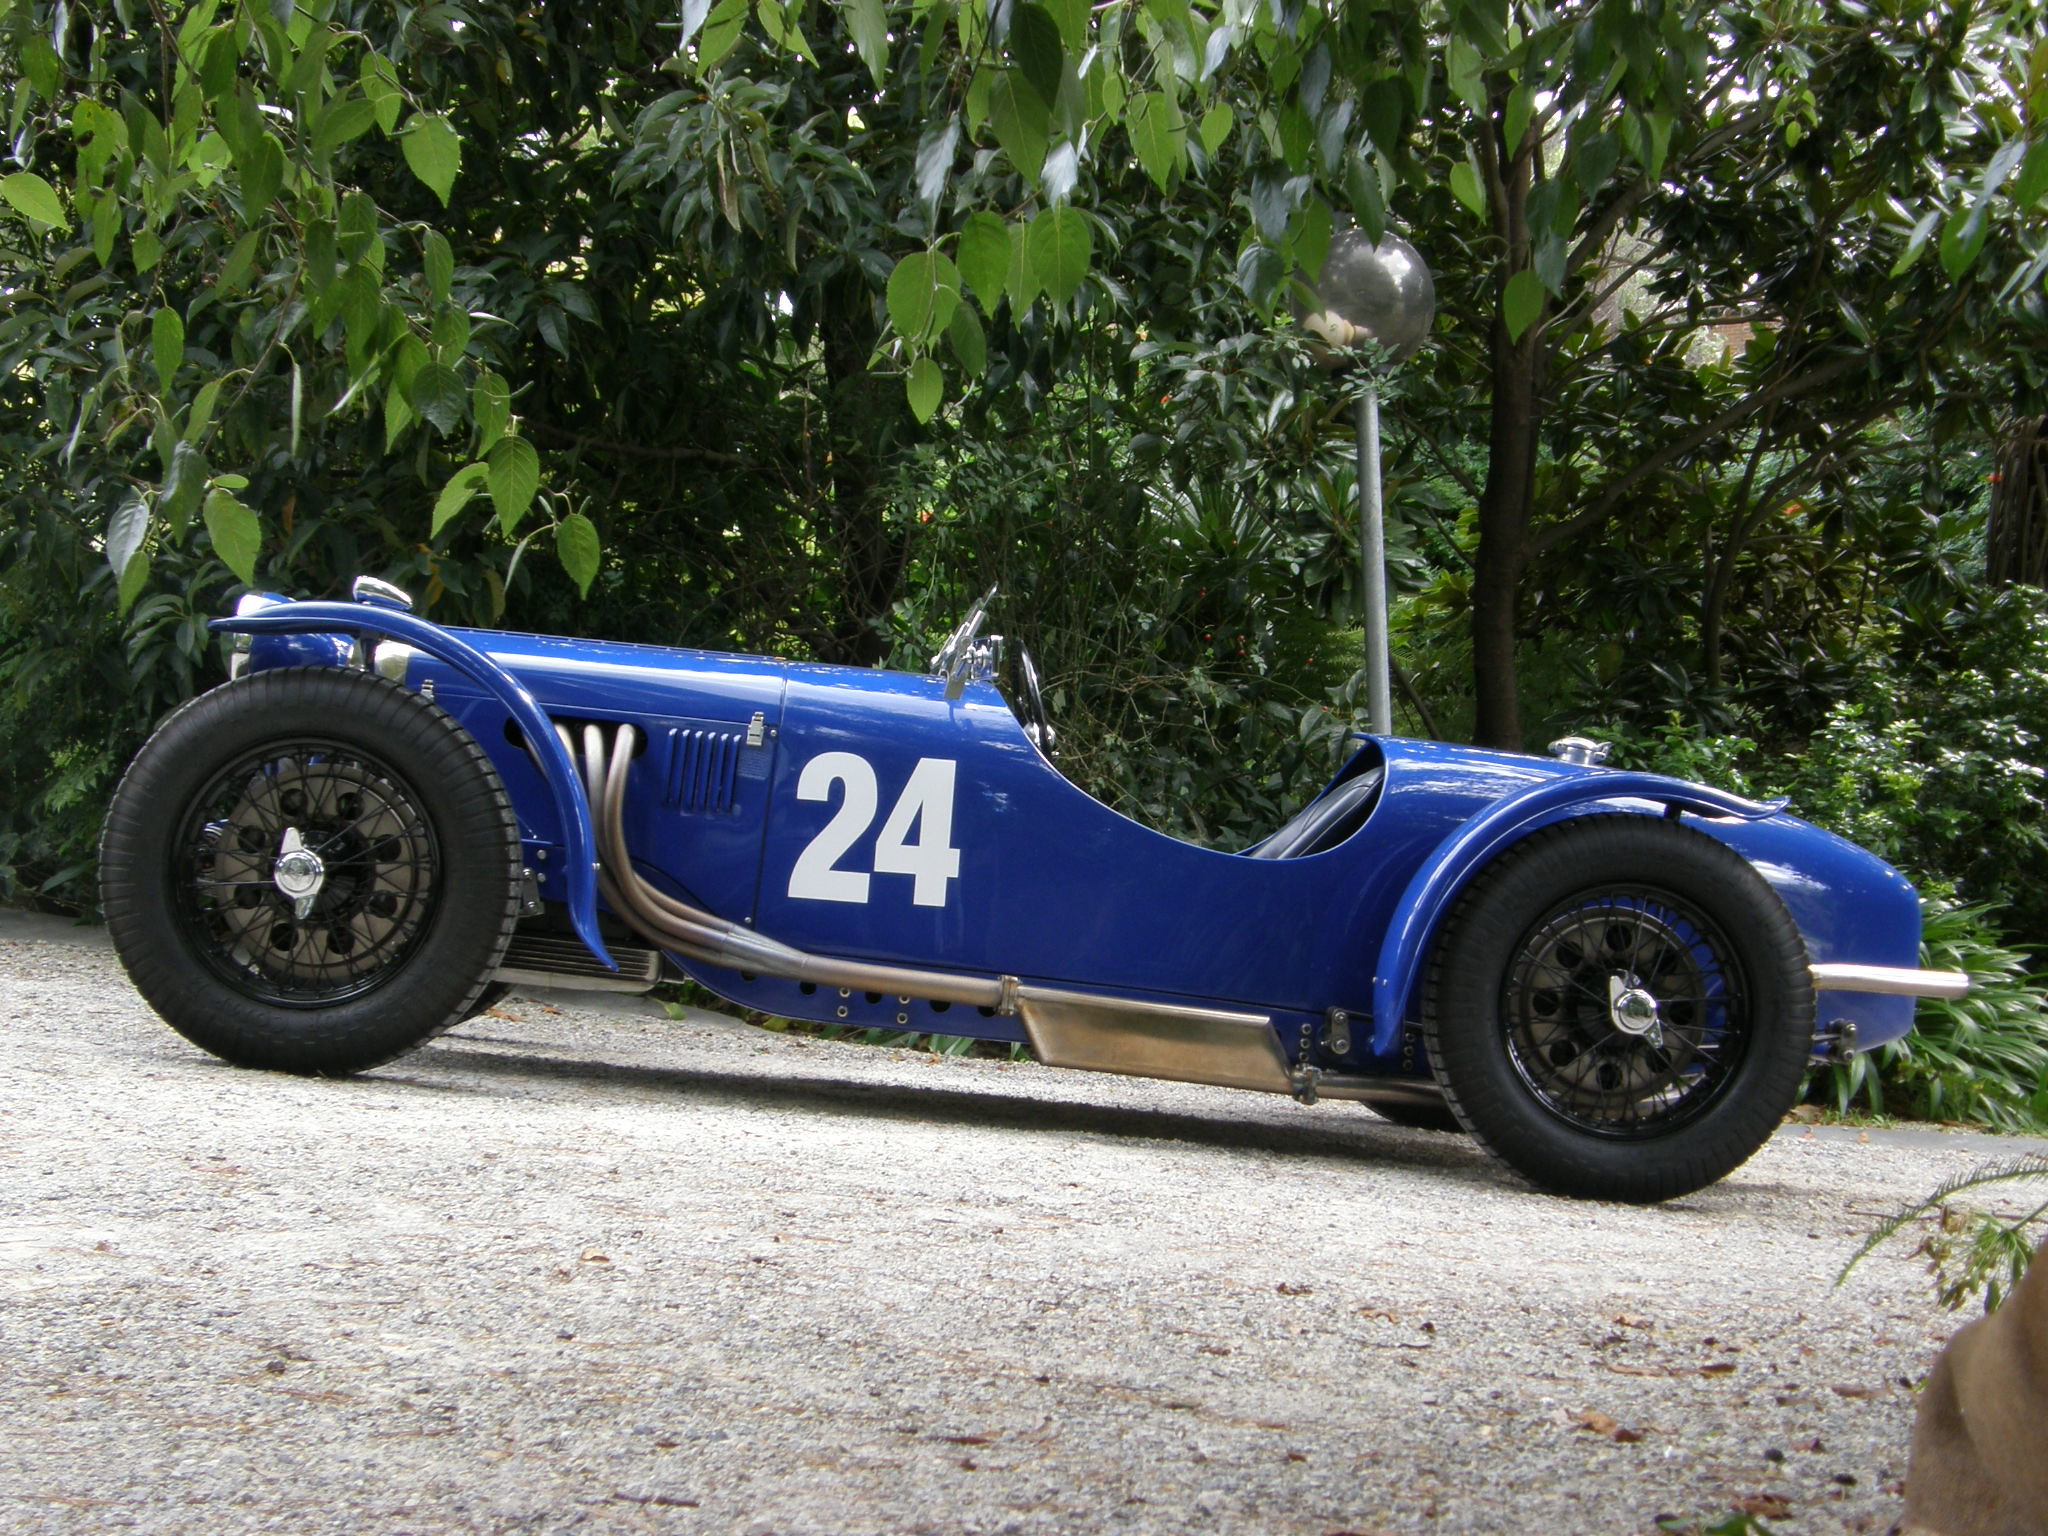 Fine Vintage Race Cars For Sale Australia Embellishment - Classic ...